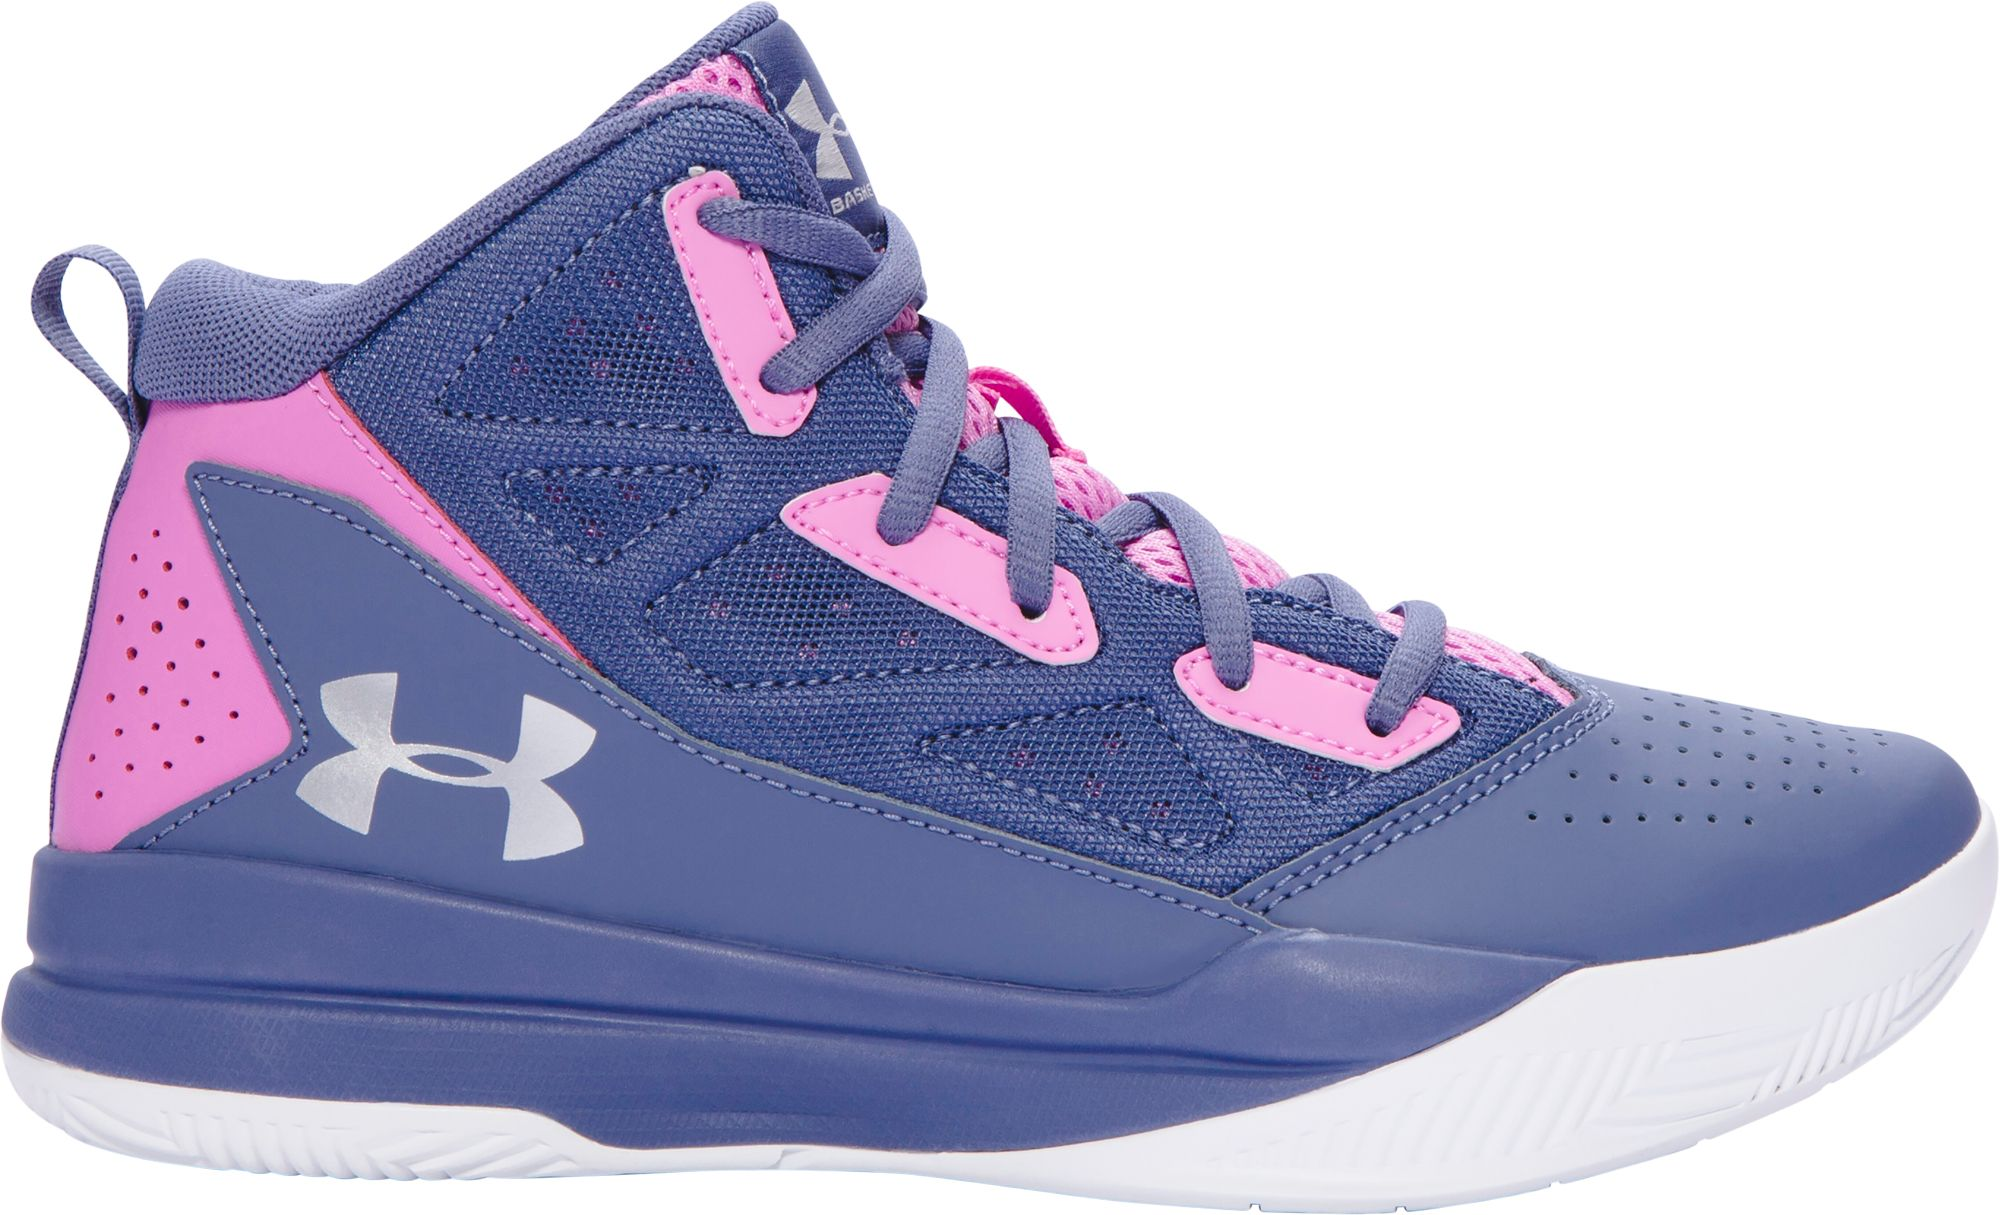 Cool Basketball Shoes for Girls